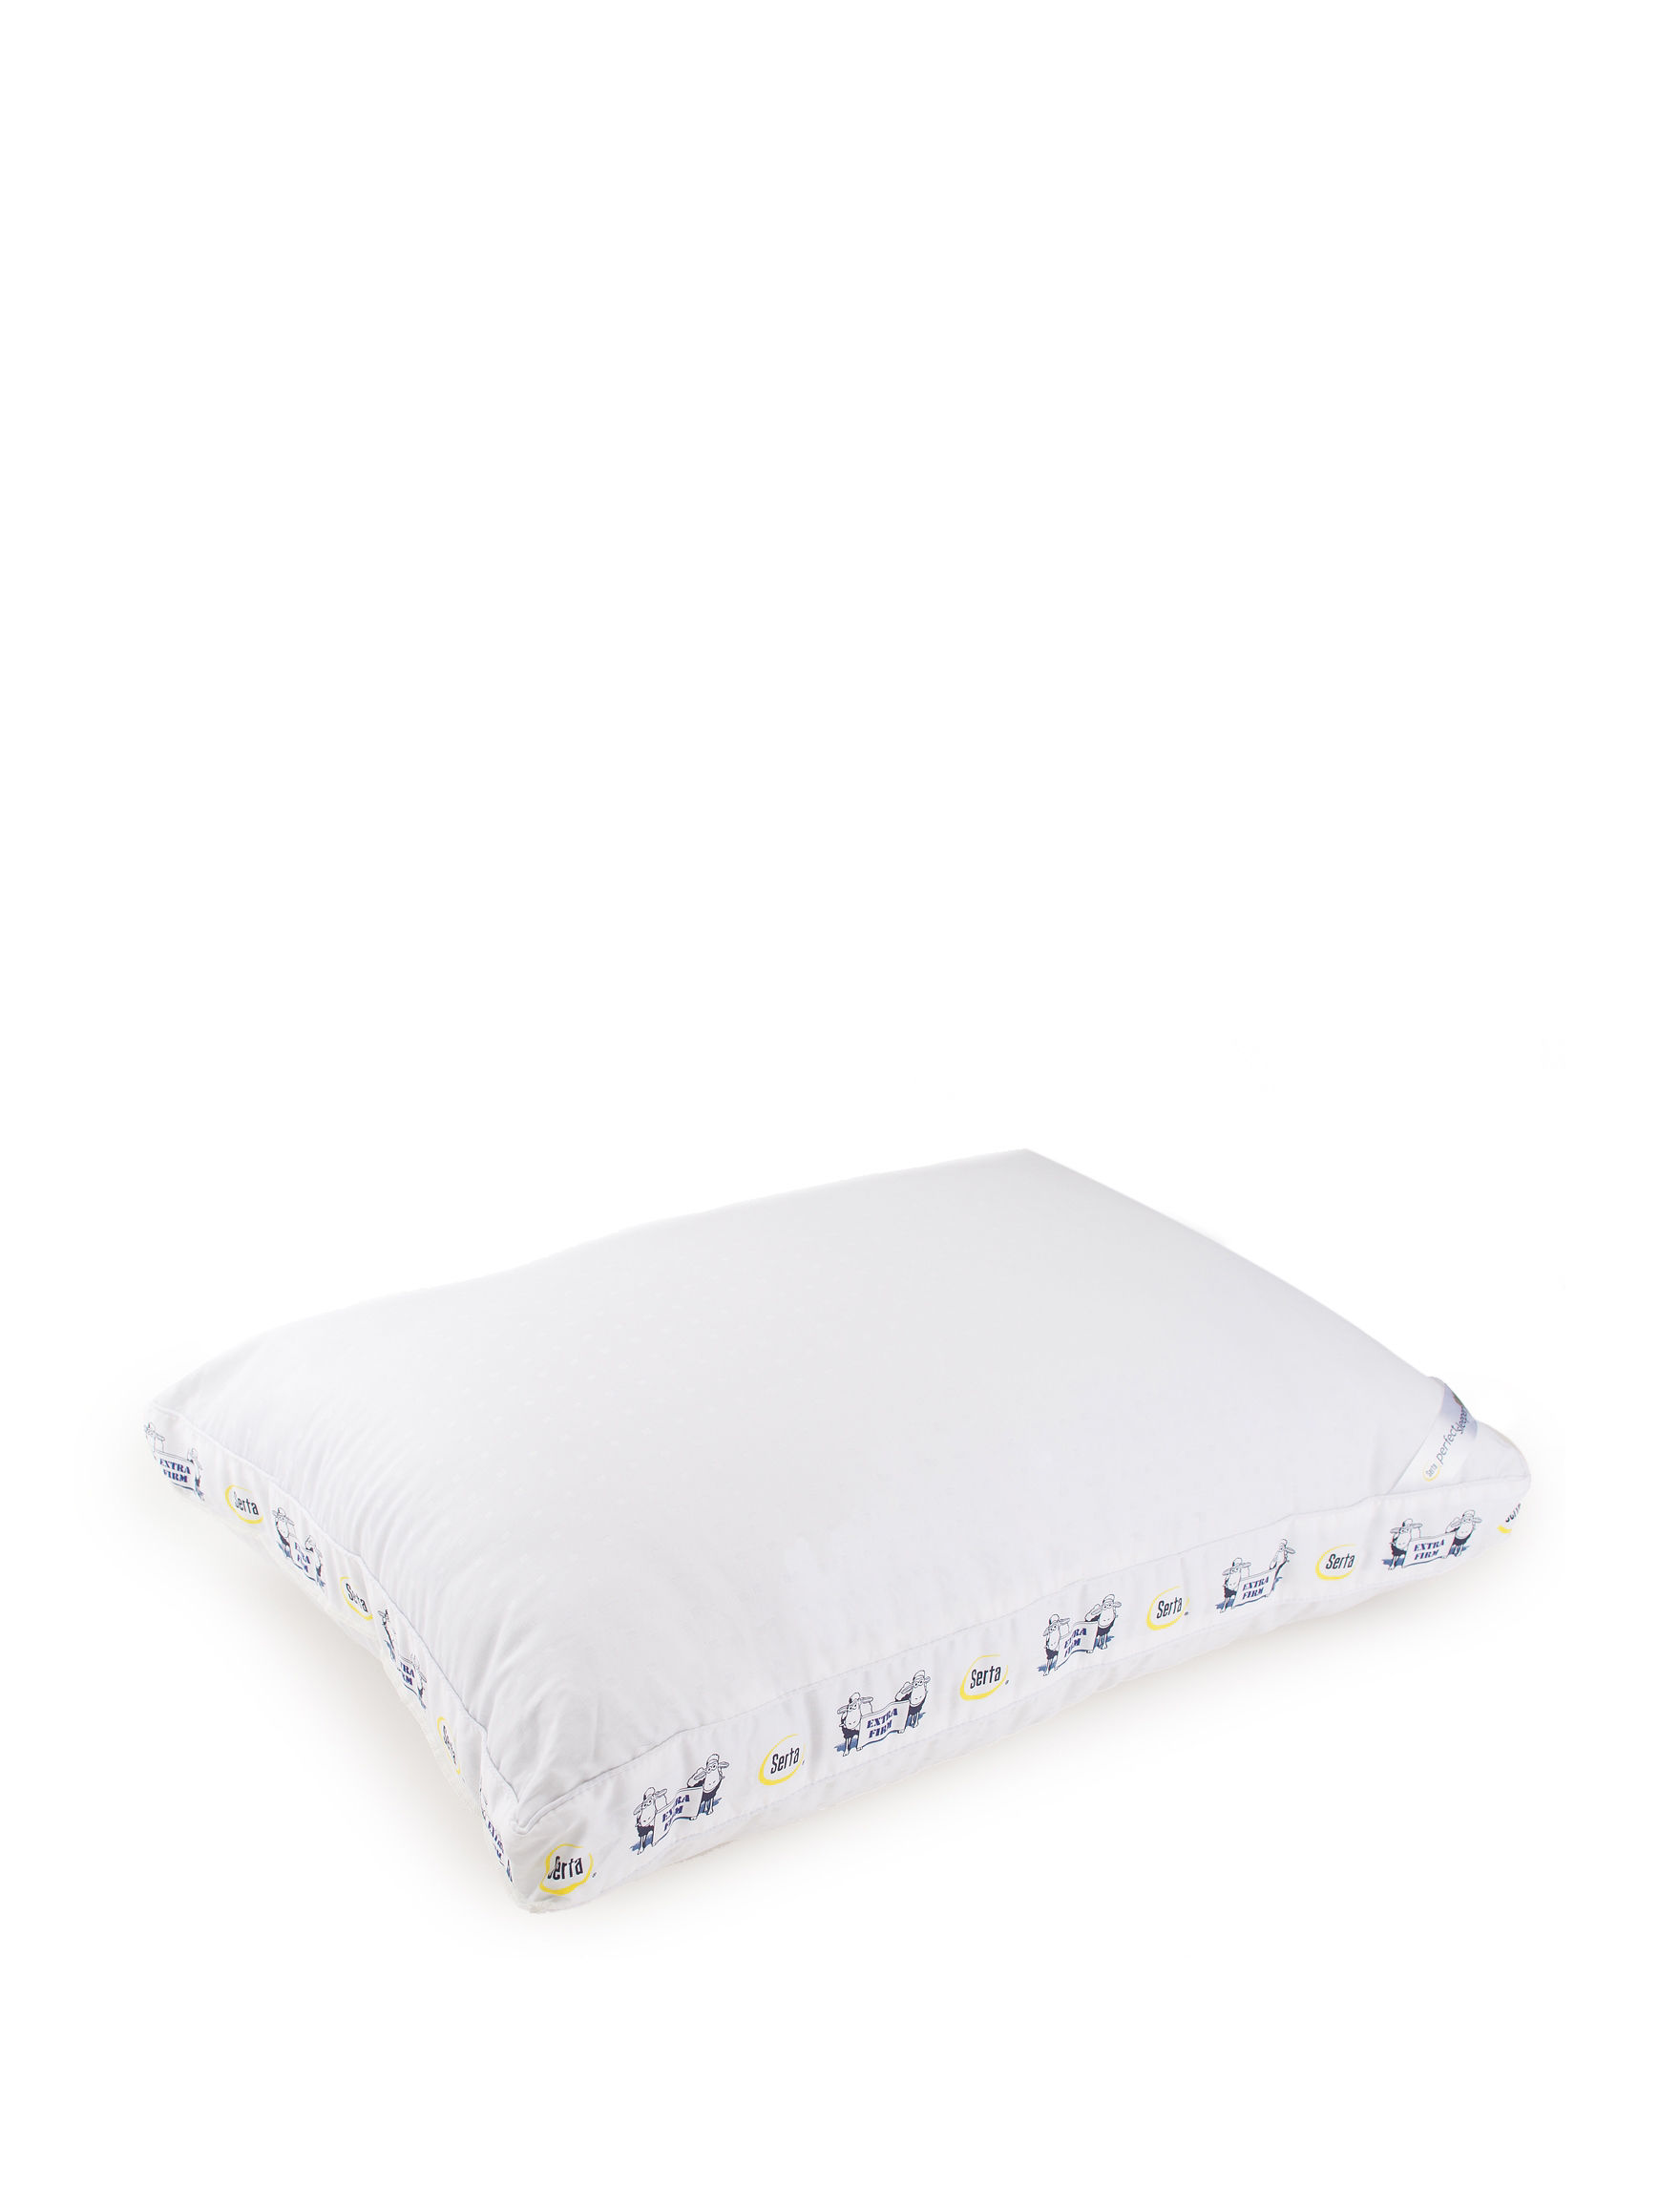 Serta White Bed Pillows